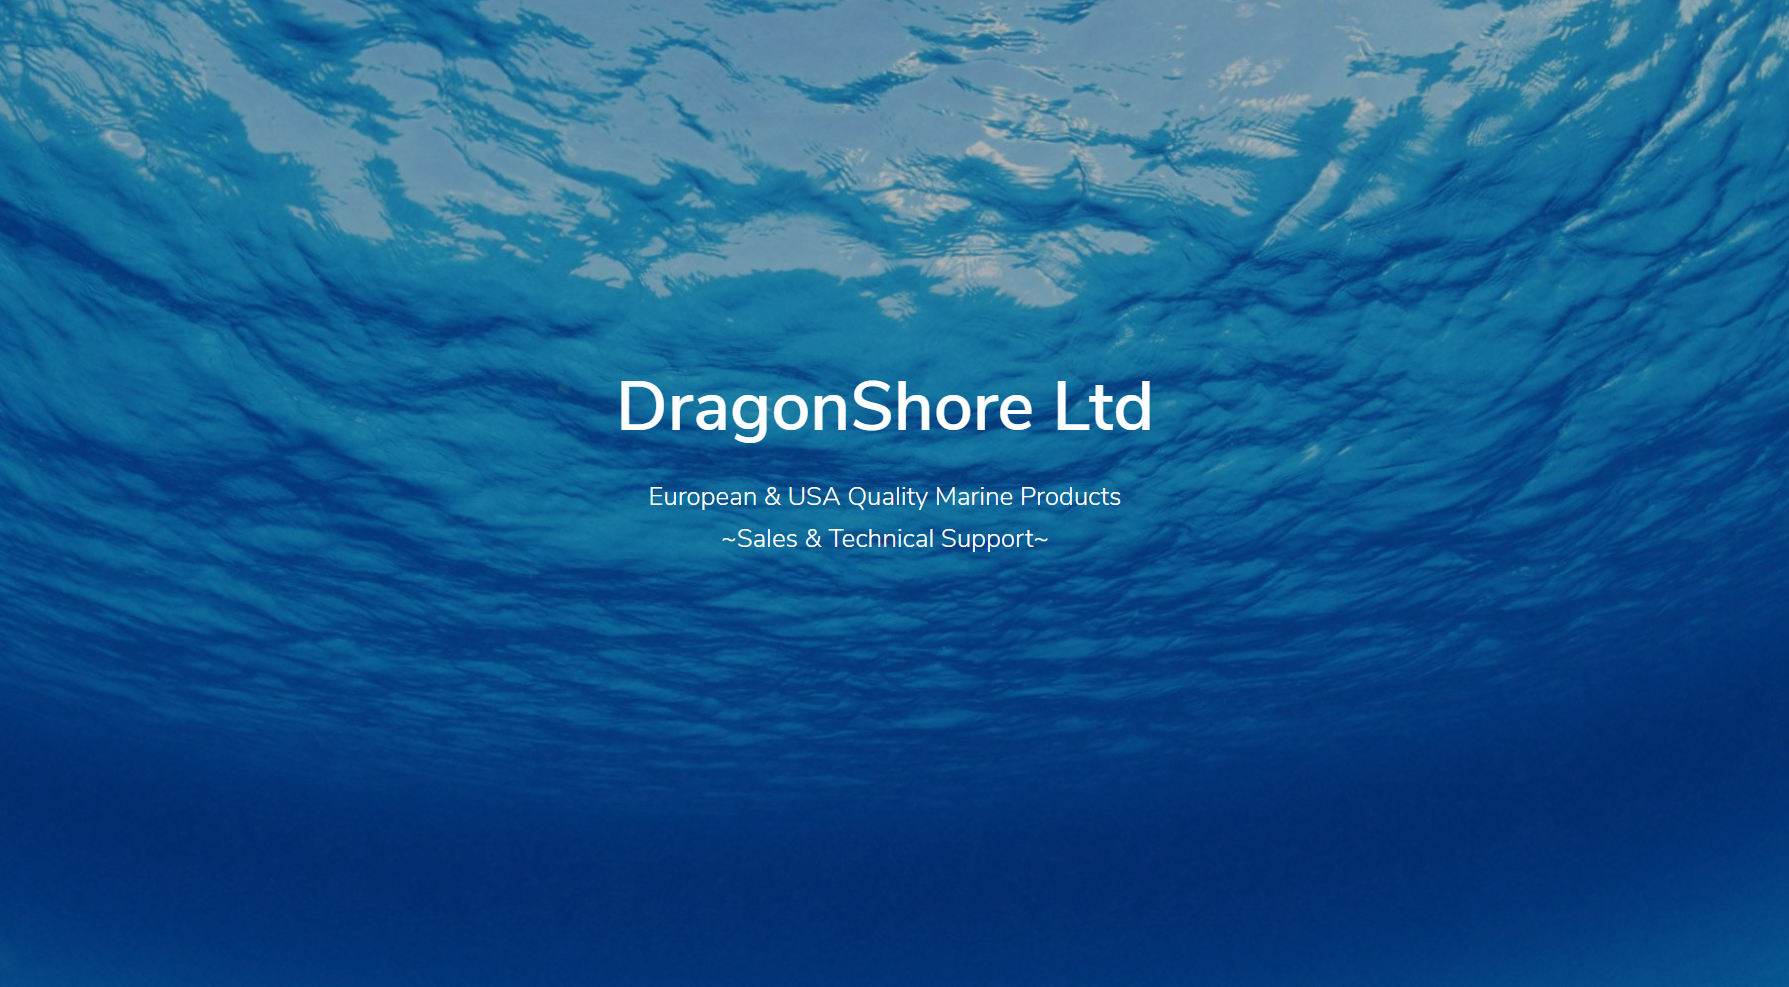 MCE Marine Group Expands SE Asia Presence With DragonShore